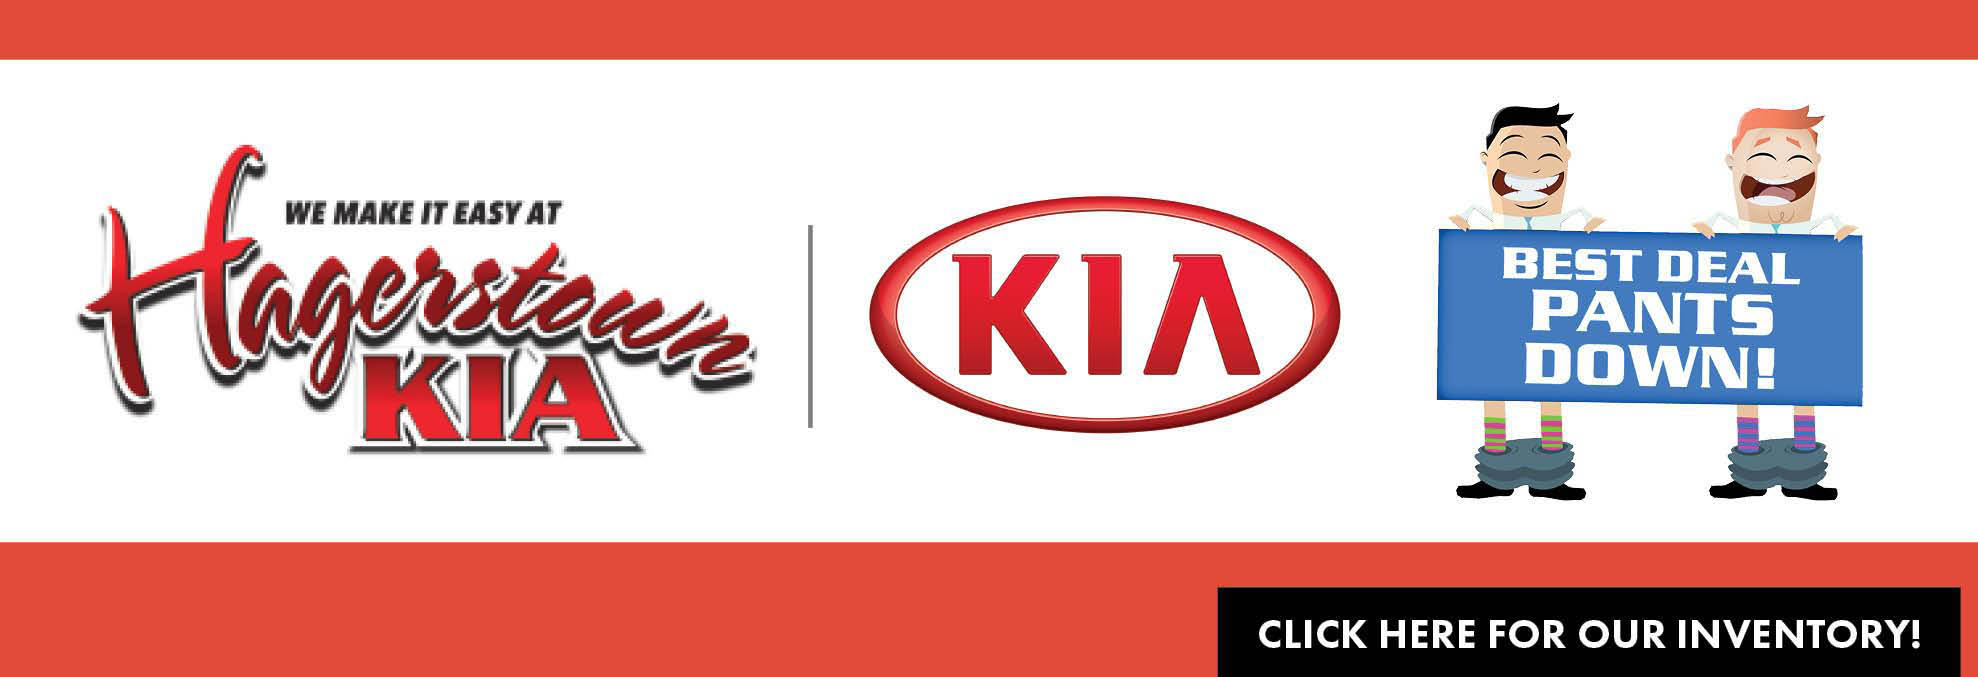 It's Savings Time At Hagerstown Kia banner